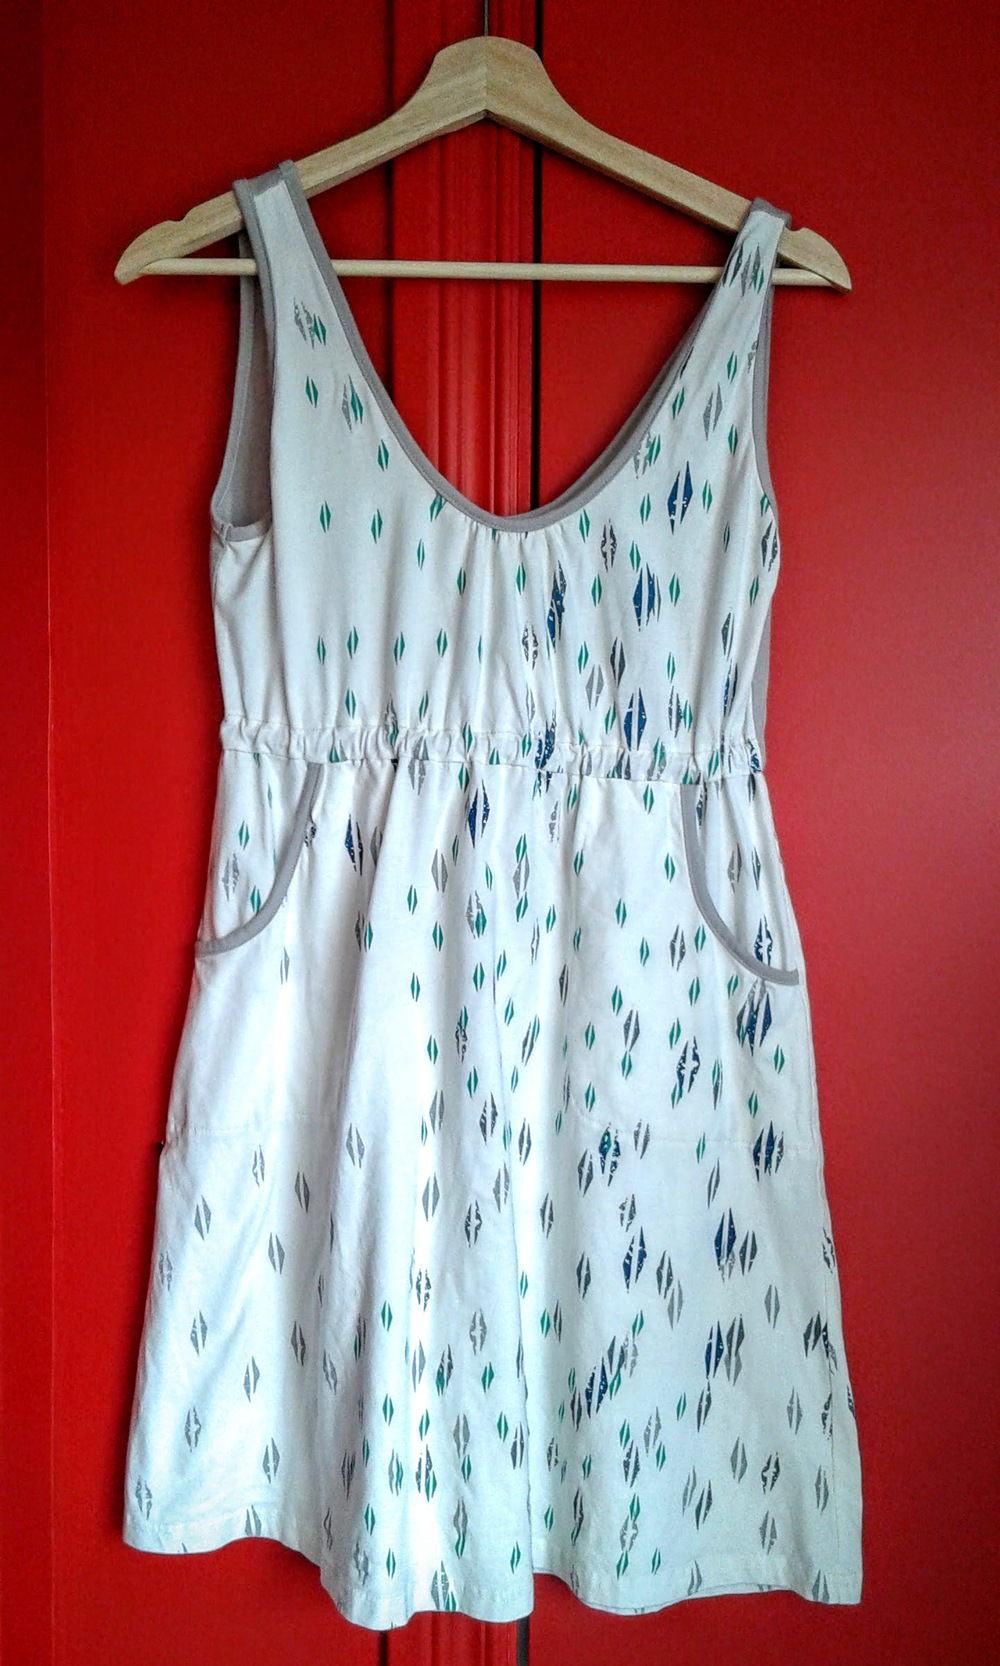 Loden dress, Size M, $28